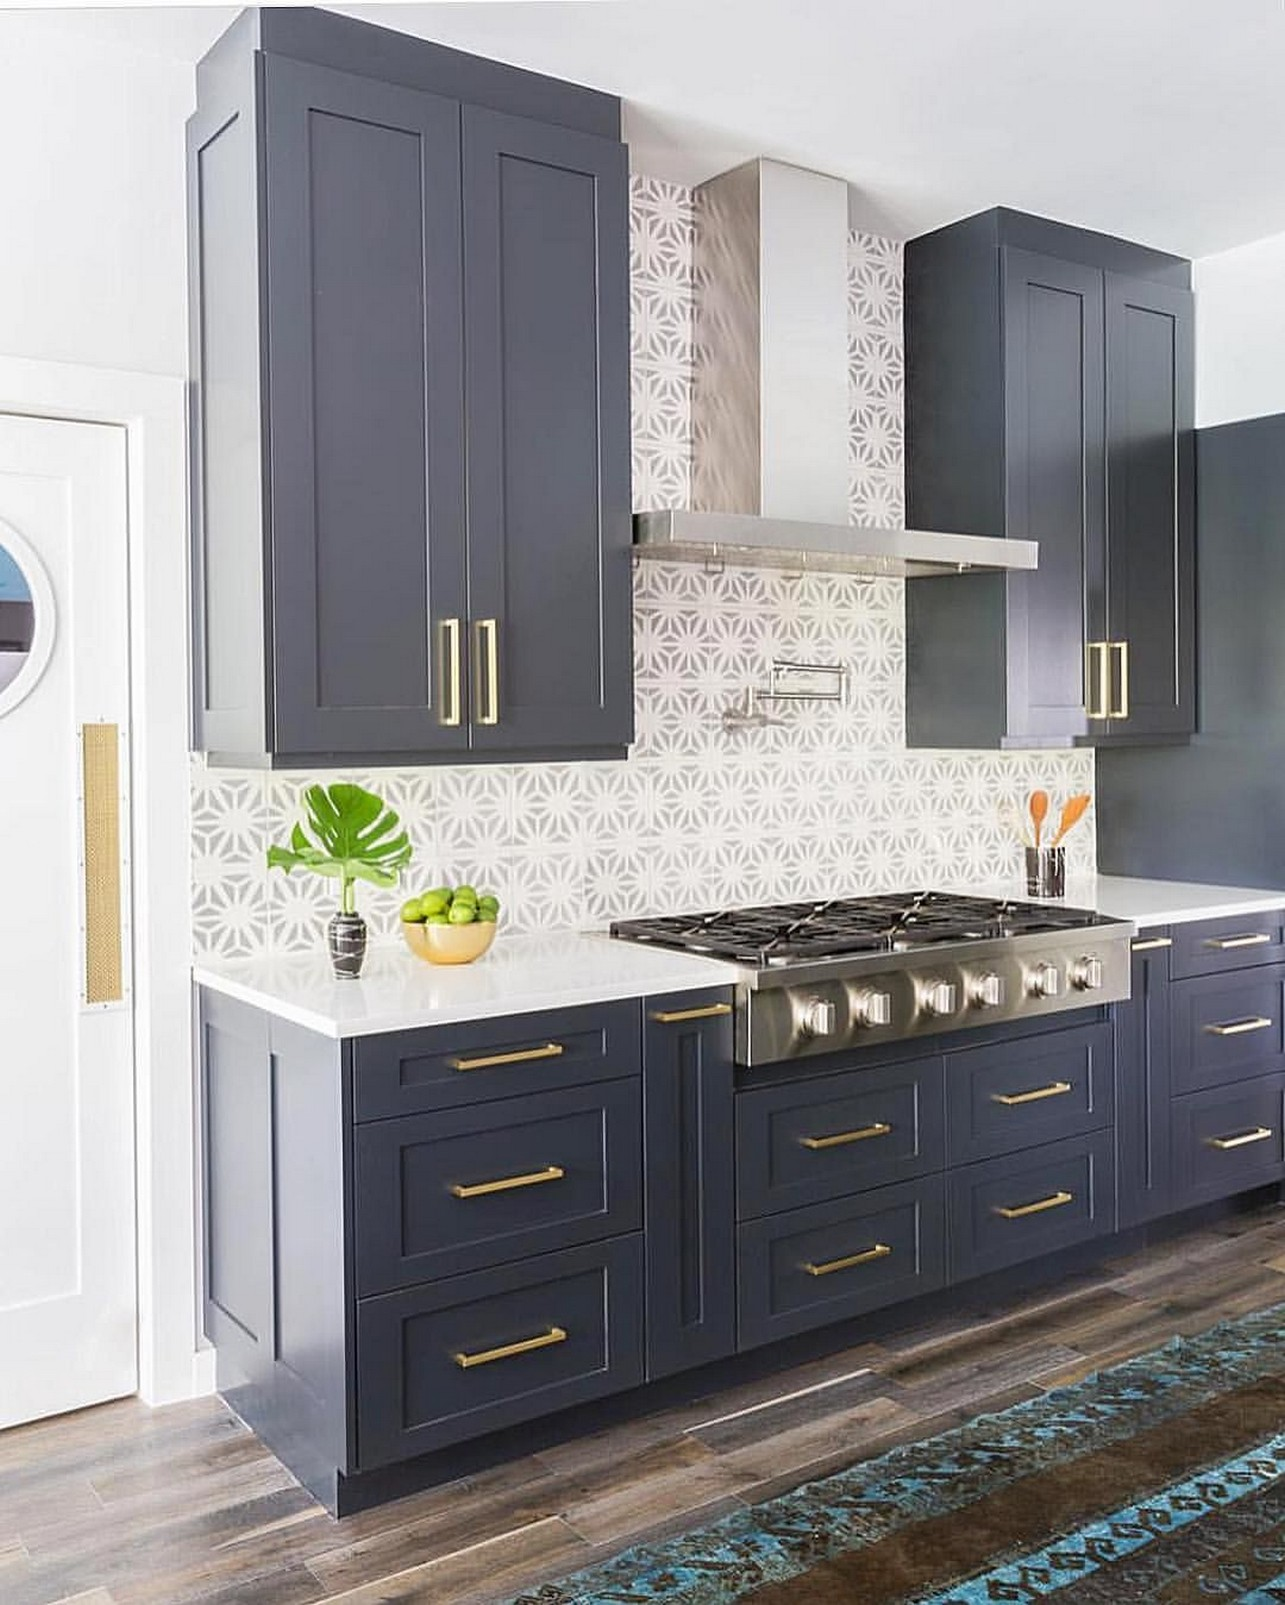 71 Painted Kitchen Cabinets Ideas For Home Decor 69